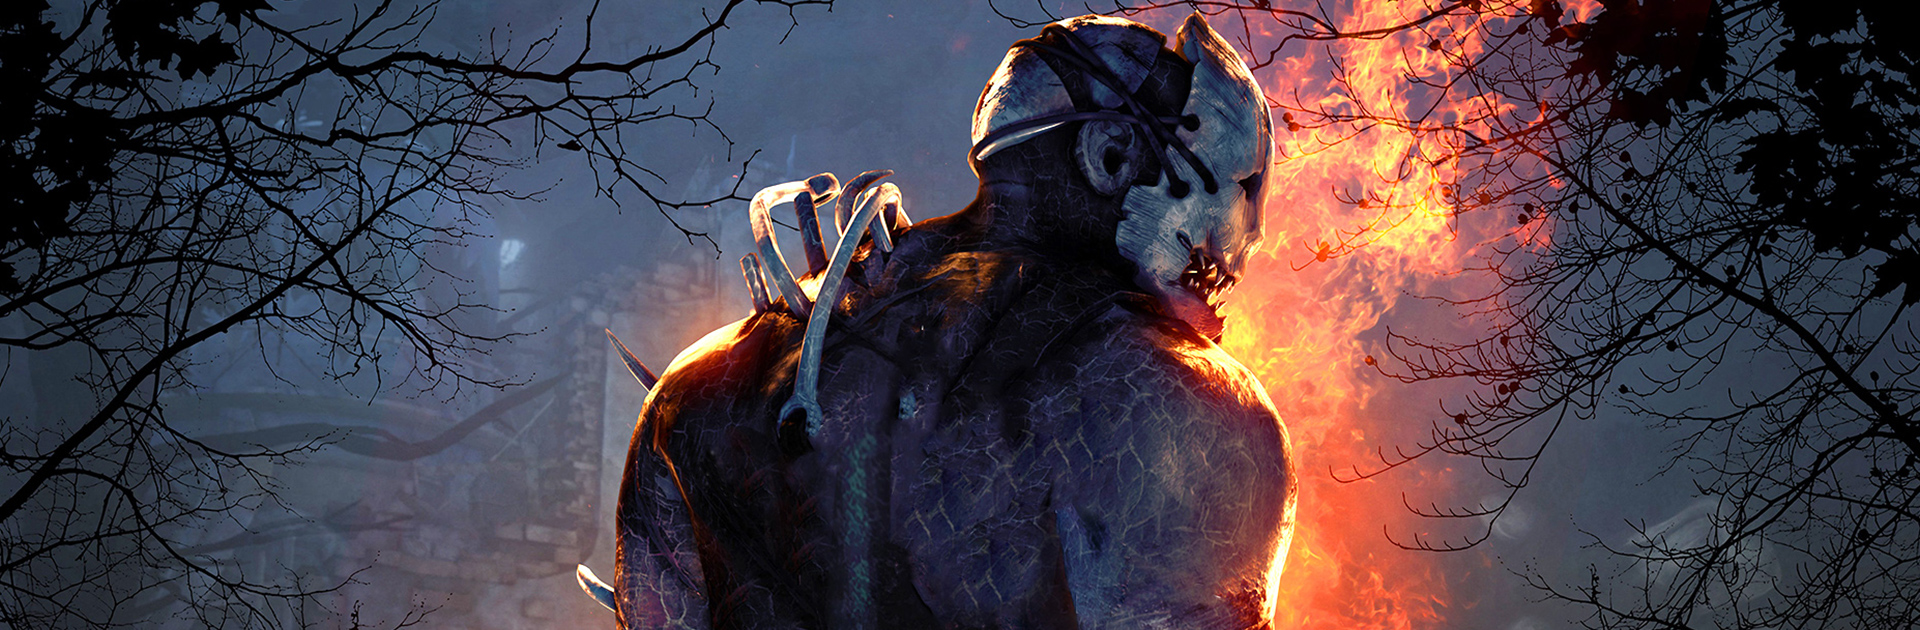 Dead by Daylight™ Announced for Stadia with Two Exclusive Features